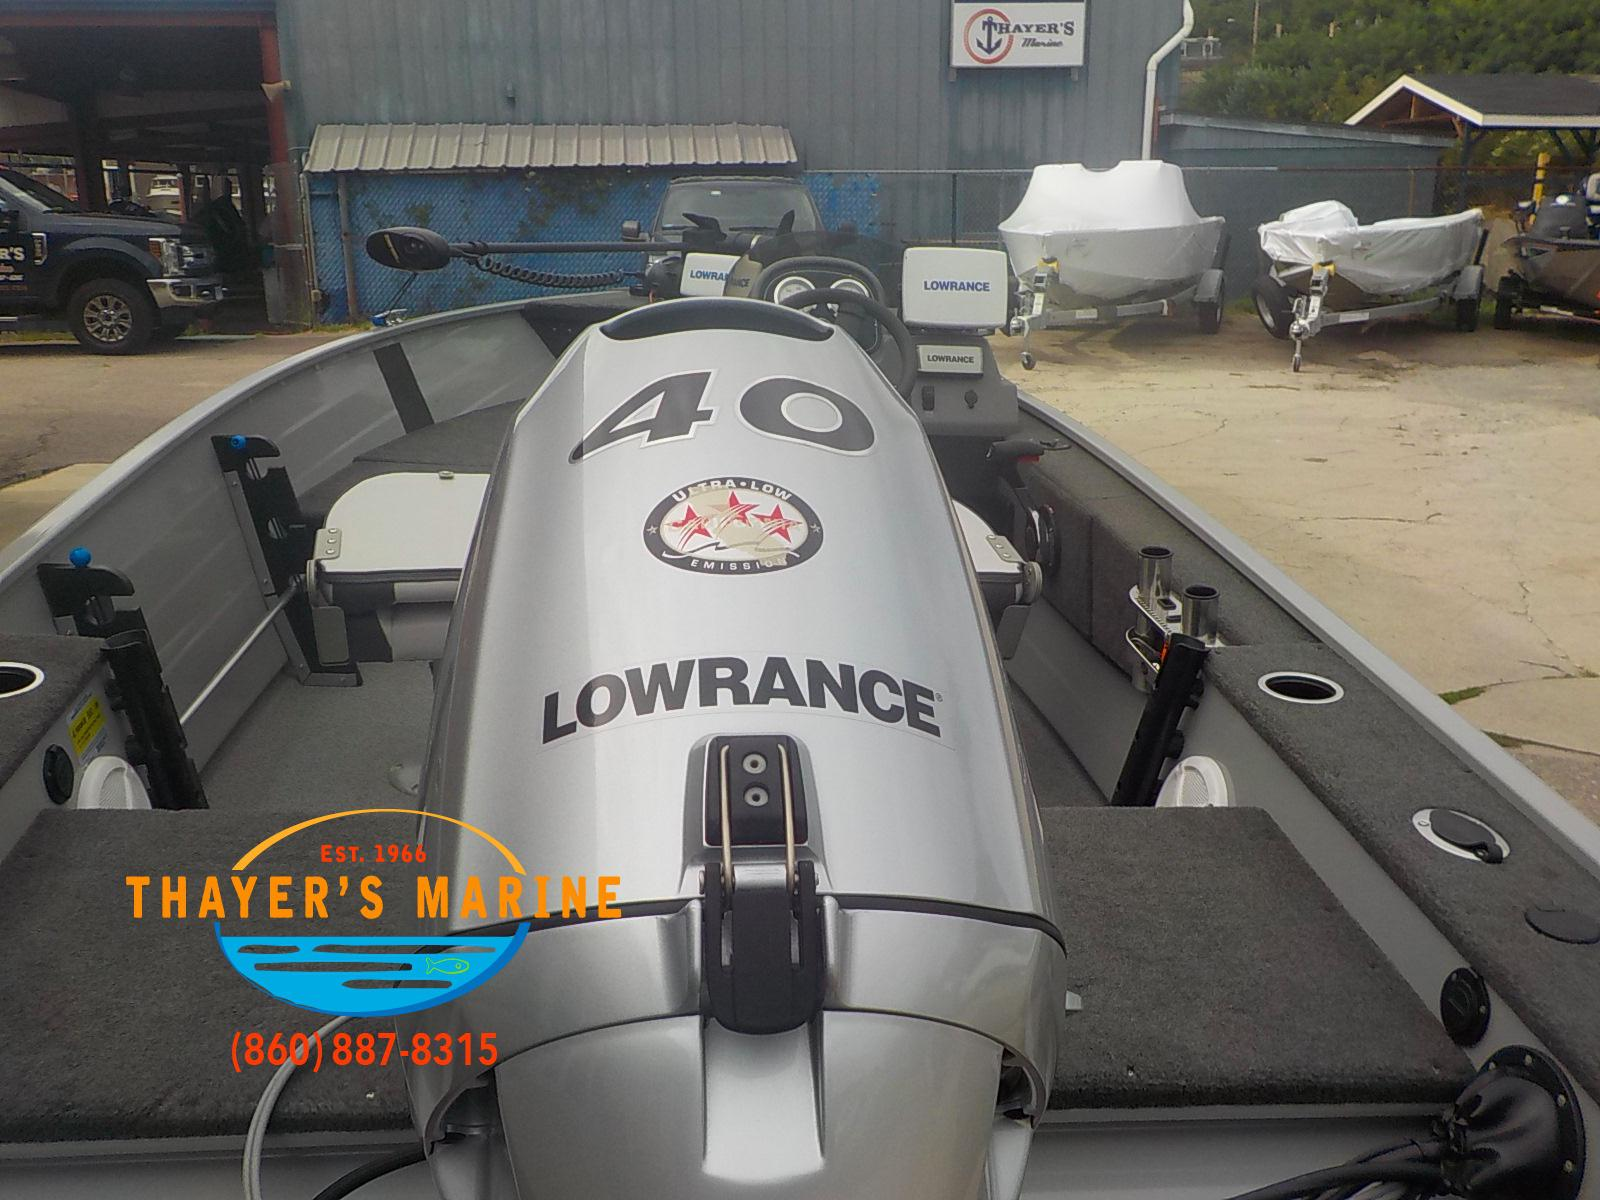 2013 Smoker Craft boat for sale, model of the boat is 151 & Image # 5 of 24